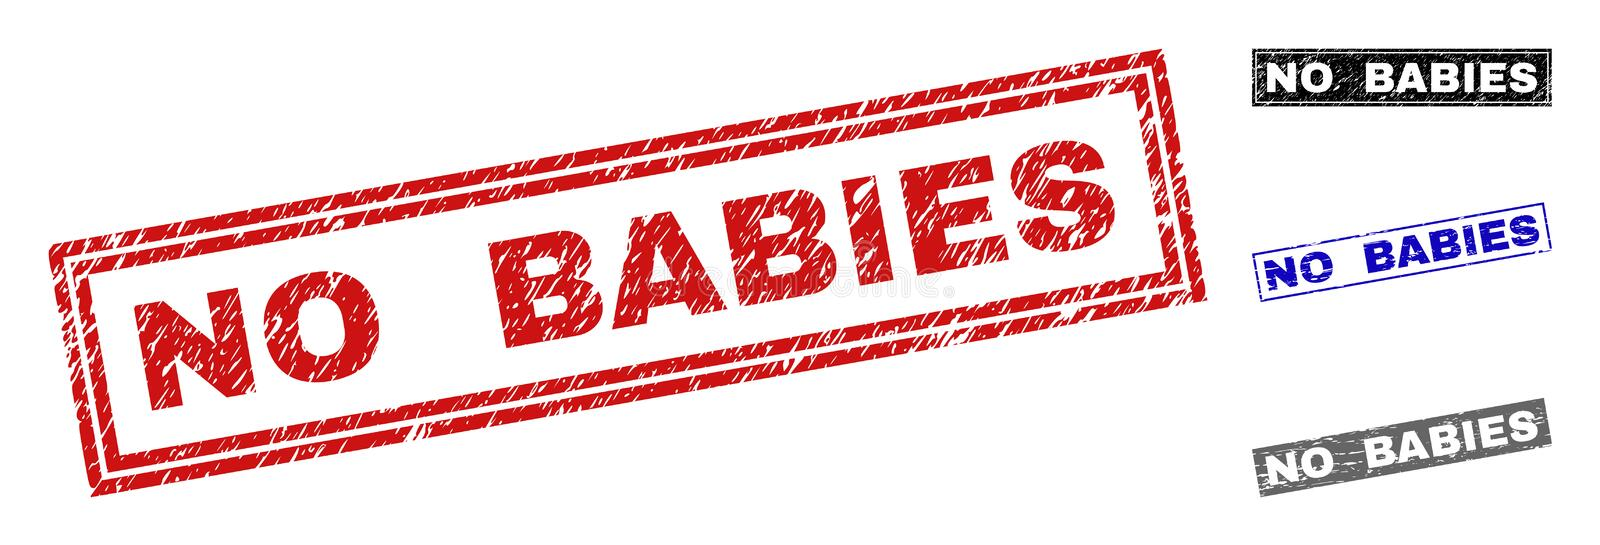 Grunge NO BABIES Textured Rectangle Watermarks. Grunge NO BABIES rectangle stamp seals isolated on a white background. Rectangular seals with grunge texture in stock illustration